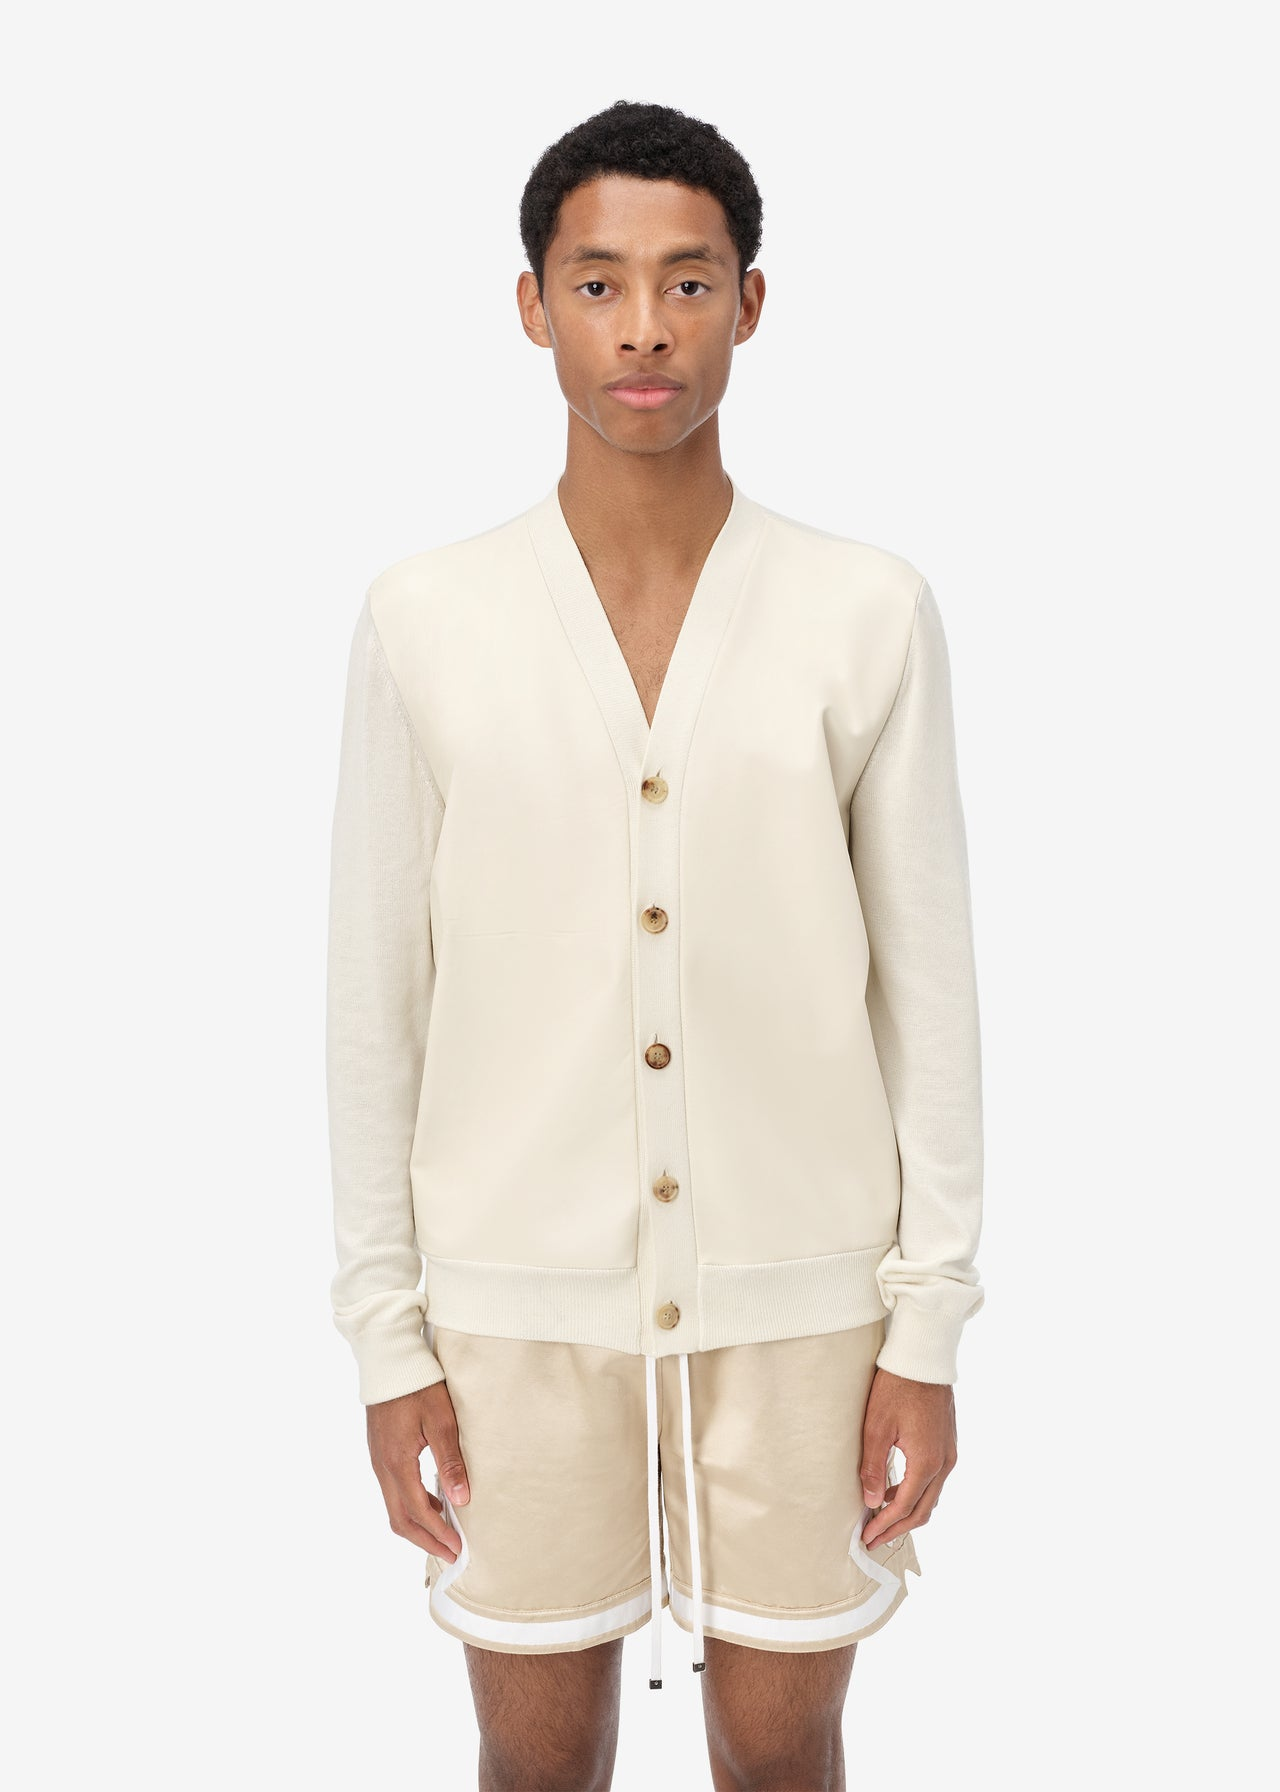 LEATHER FRONT CARDIGAN  - Alabaster